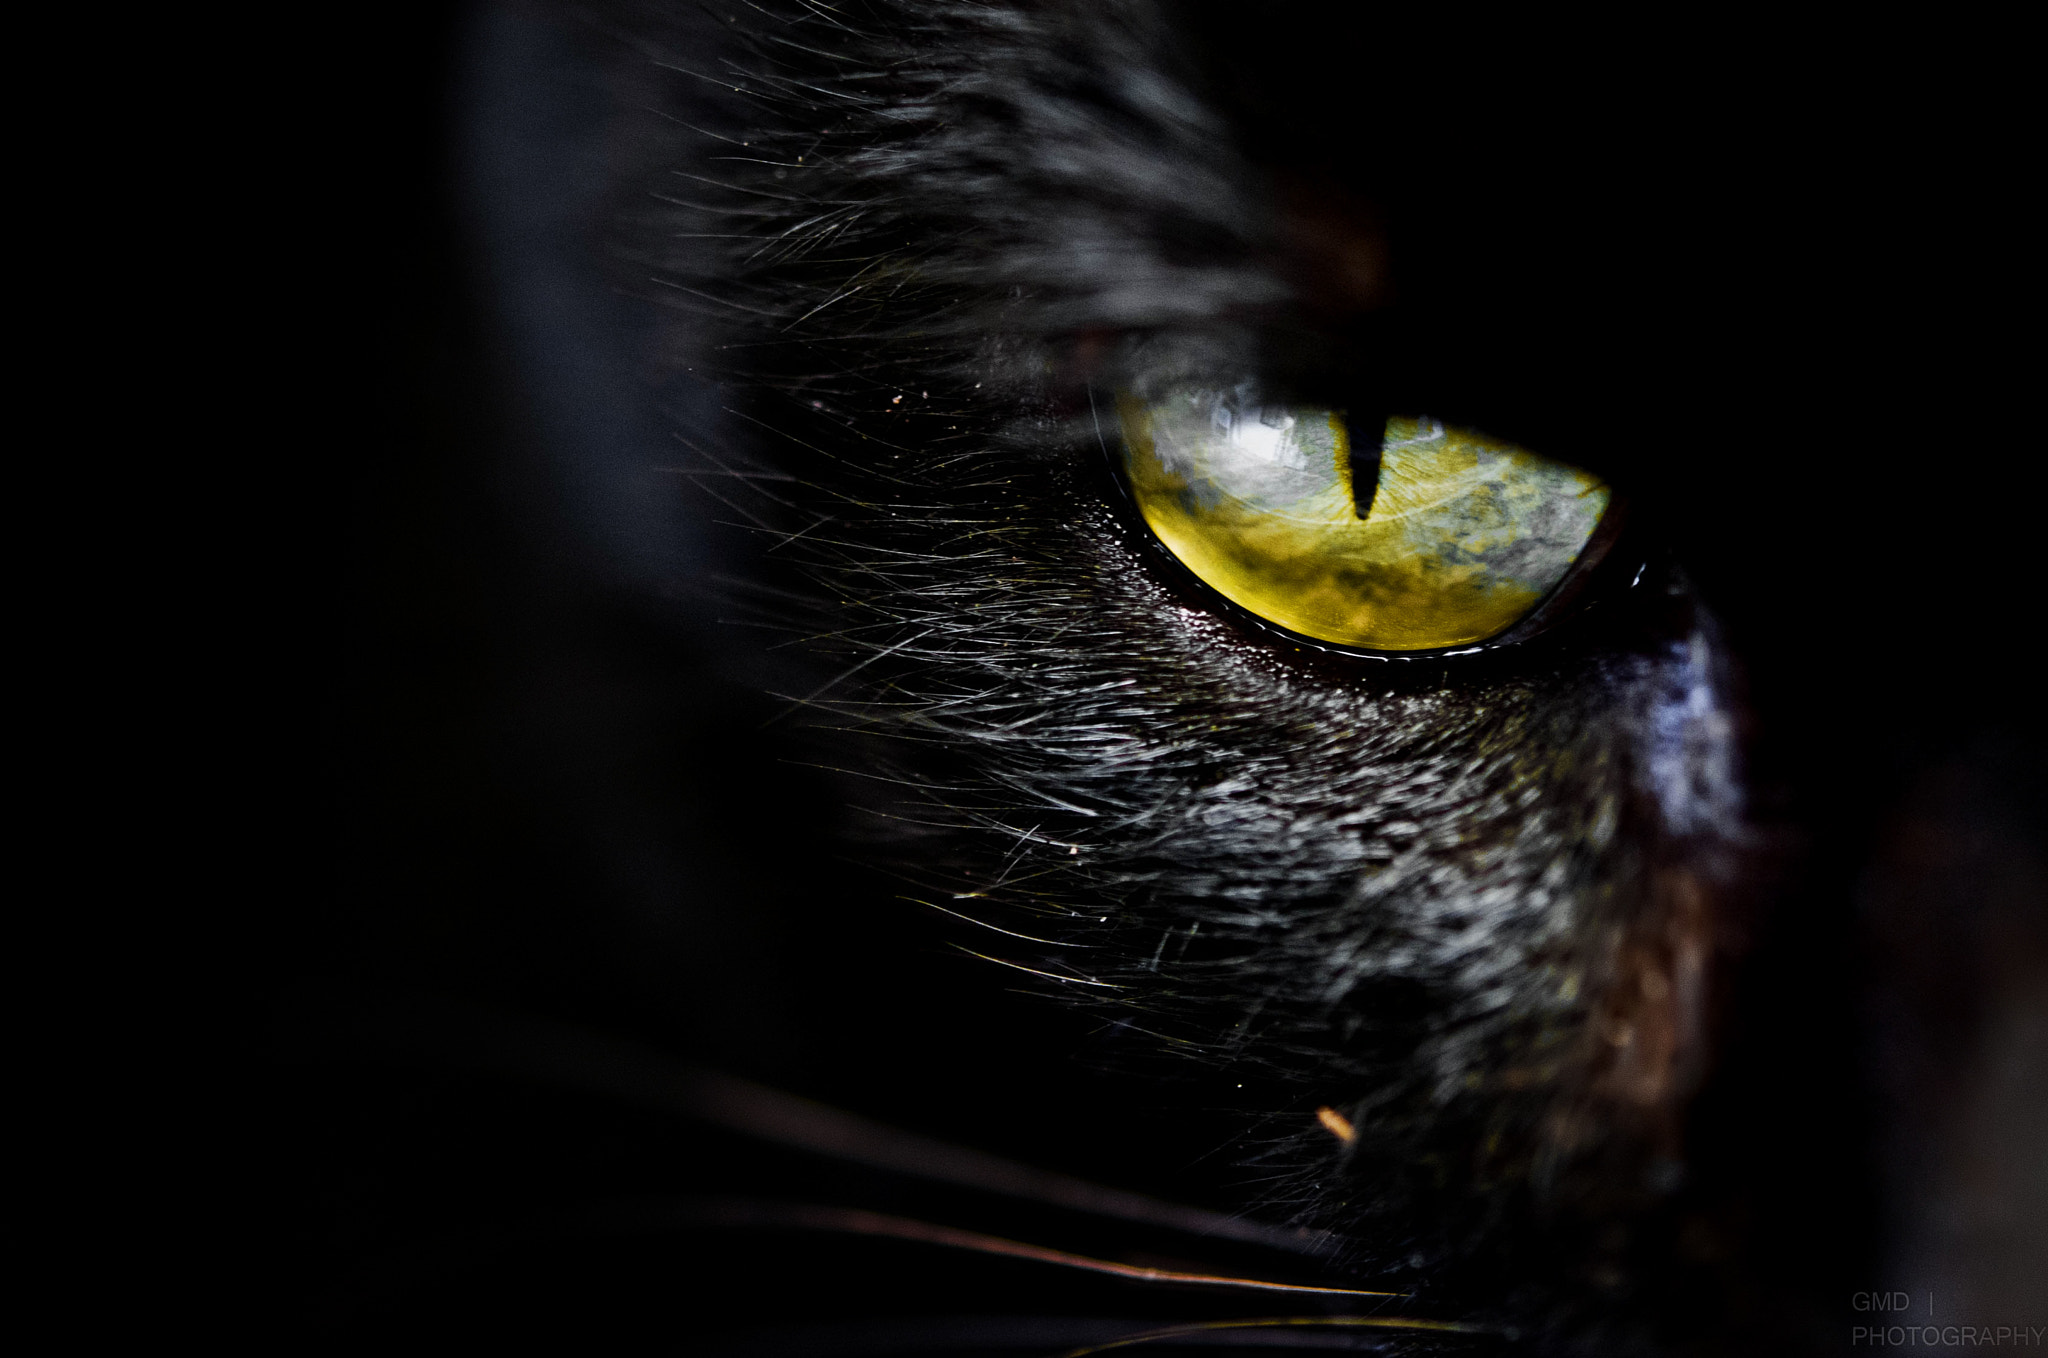 Photograph Look at me closely by Glenn Dumaguing on 500px